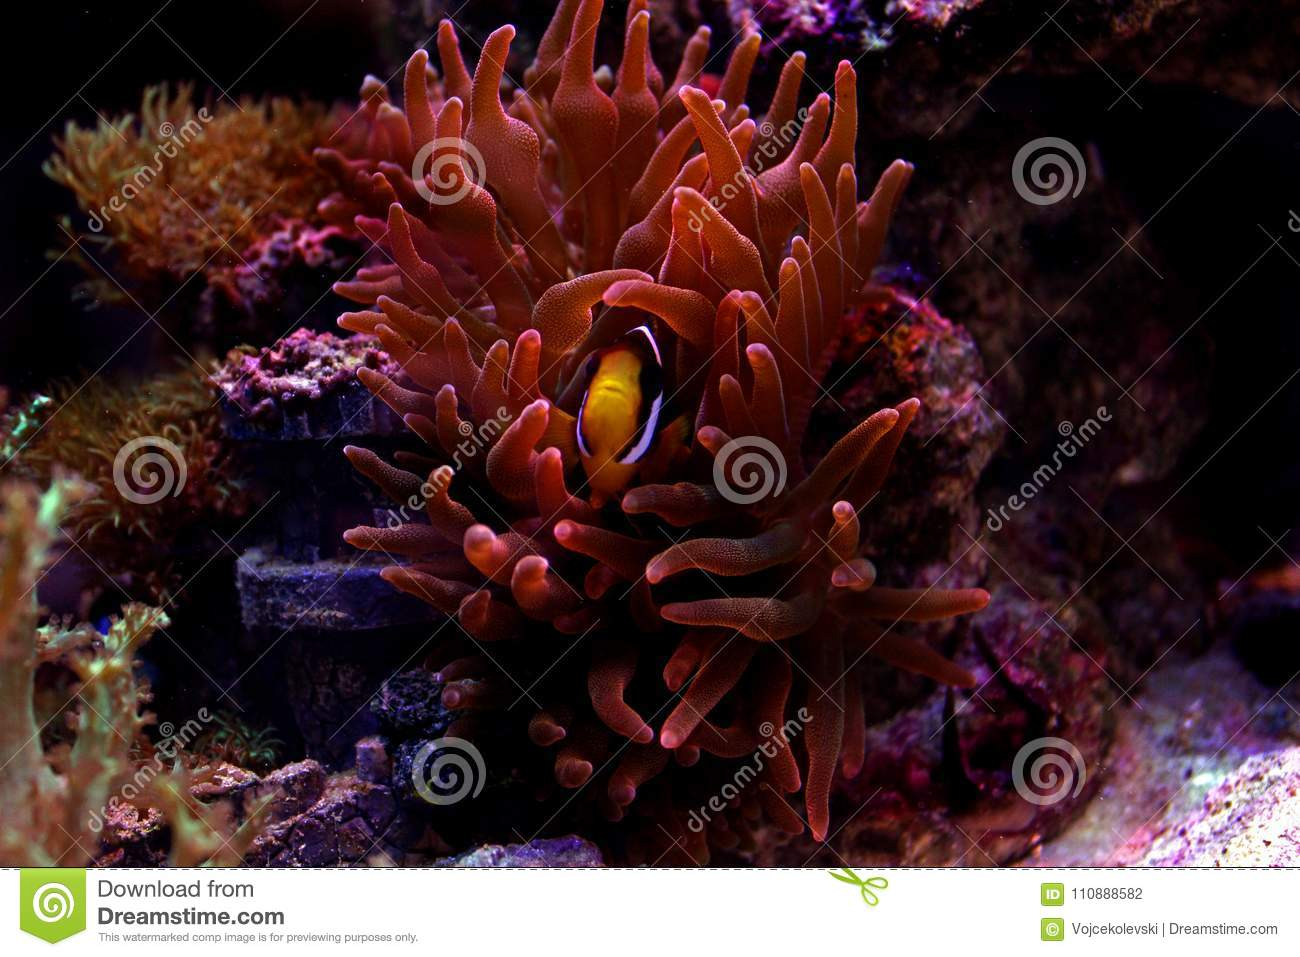 Clarkii Clownfish - Amphiprion Clarkii Stock Photo - Image of ...